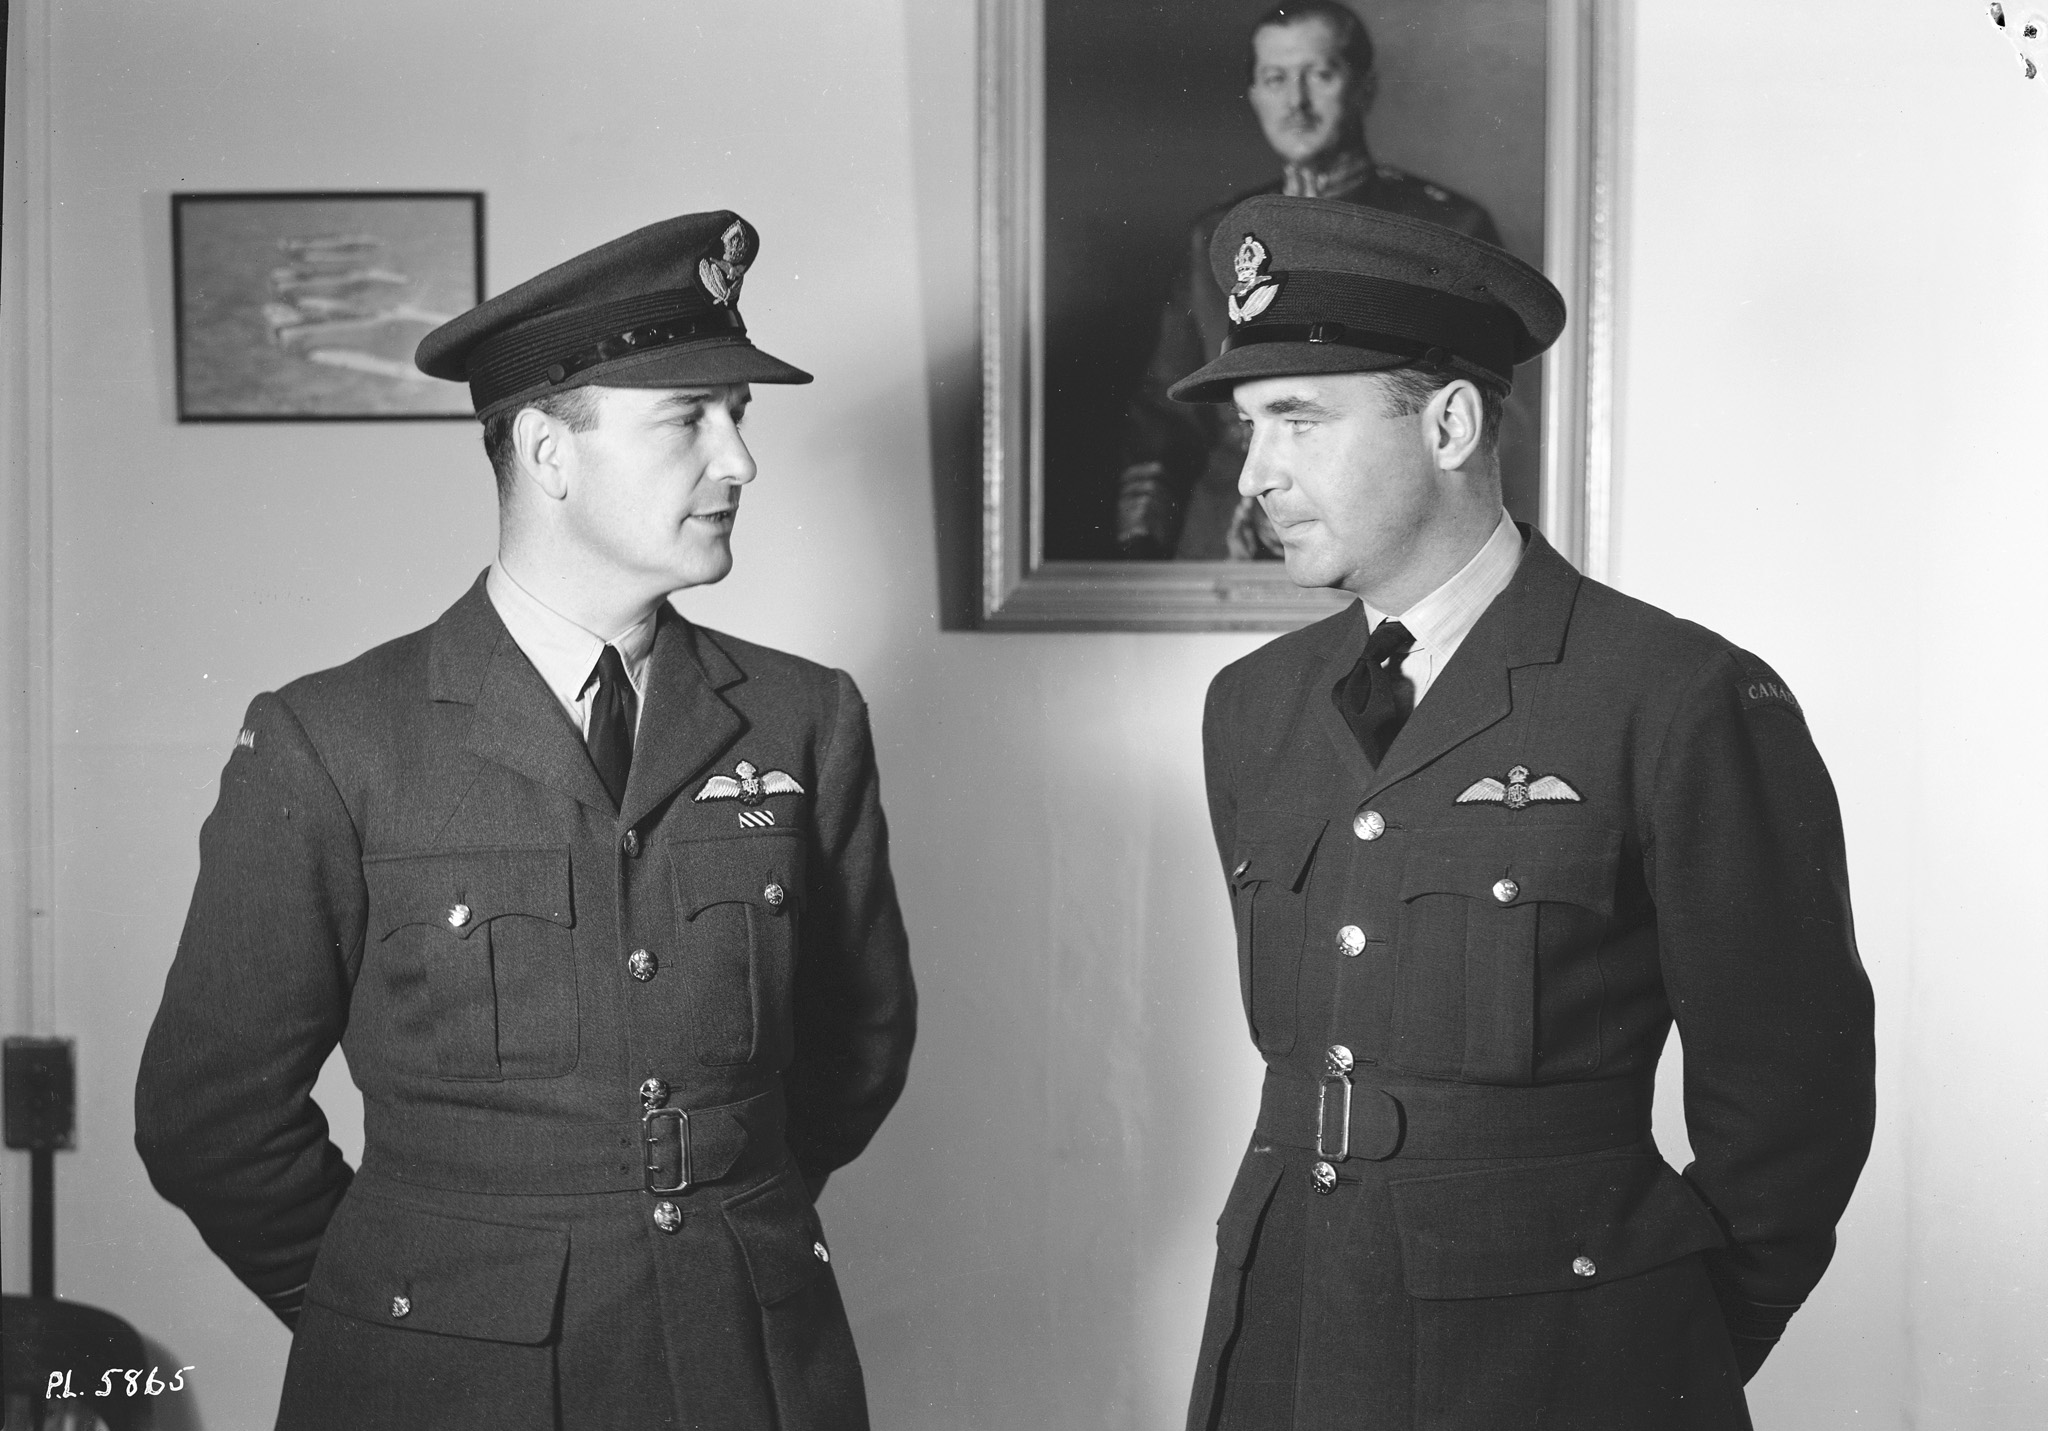 A September 19, 1941, photo of Wing Commander Gordon Roy McGregor and Squadron Leader A. Deane Nesbitt. Both were pilots during the Battle of Britain. McGregor became the first RCAF commander of a wing when he helped form the Digby Wing in April 1941; Nesbitt commanded 144 Wing from May to July 1944 and 143 Wing from January to September 1945. PHOTO: DND Archives, PL-5865